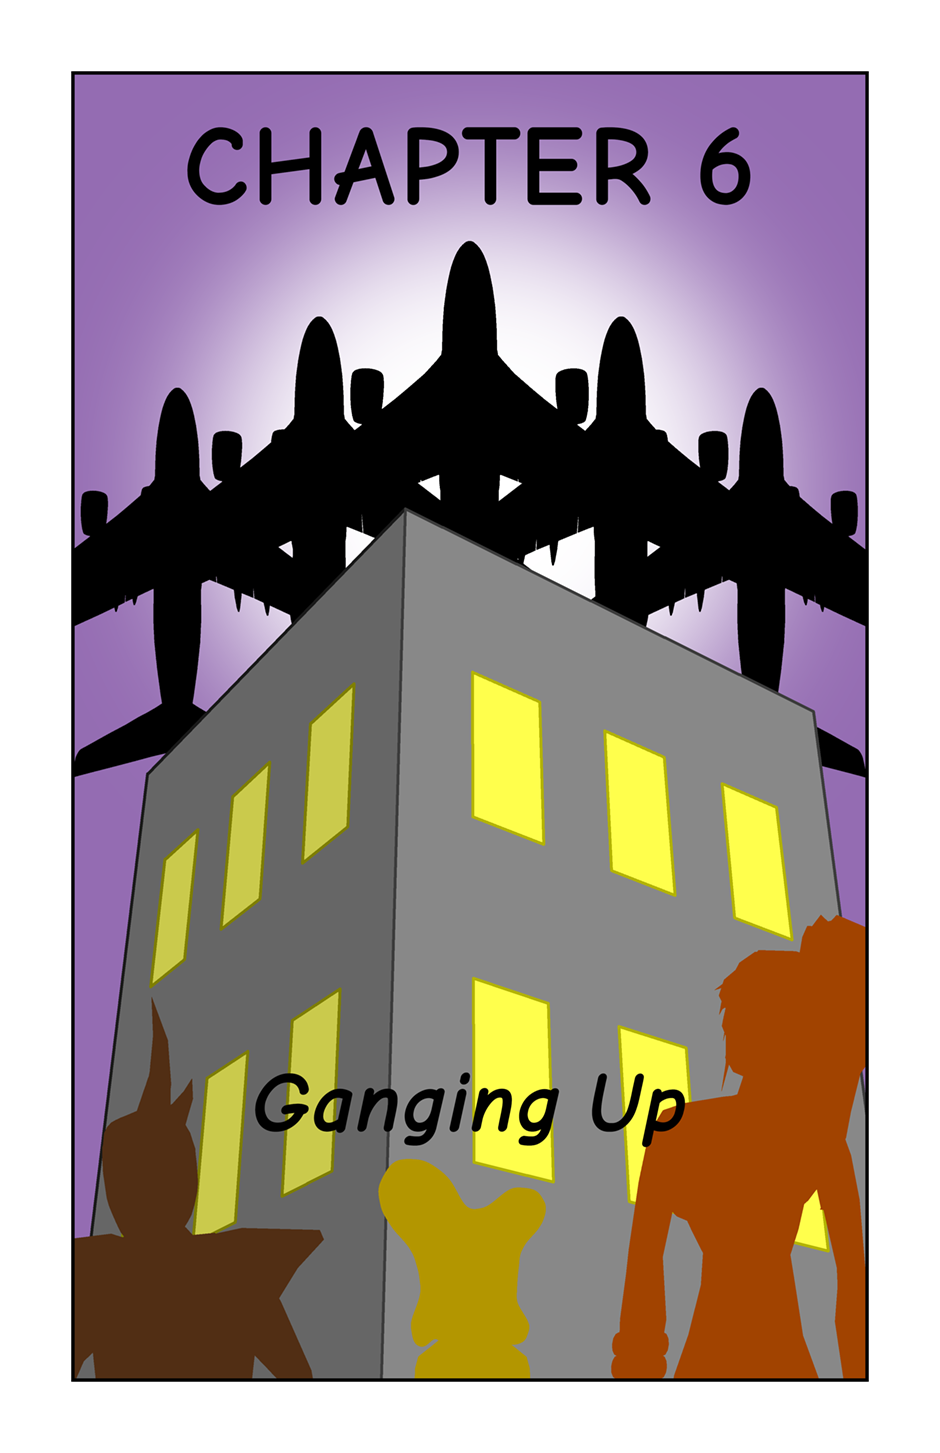 CHAPTER 6 - GANGING UP